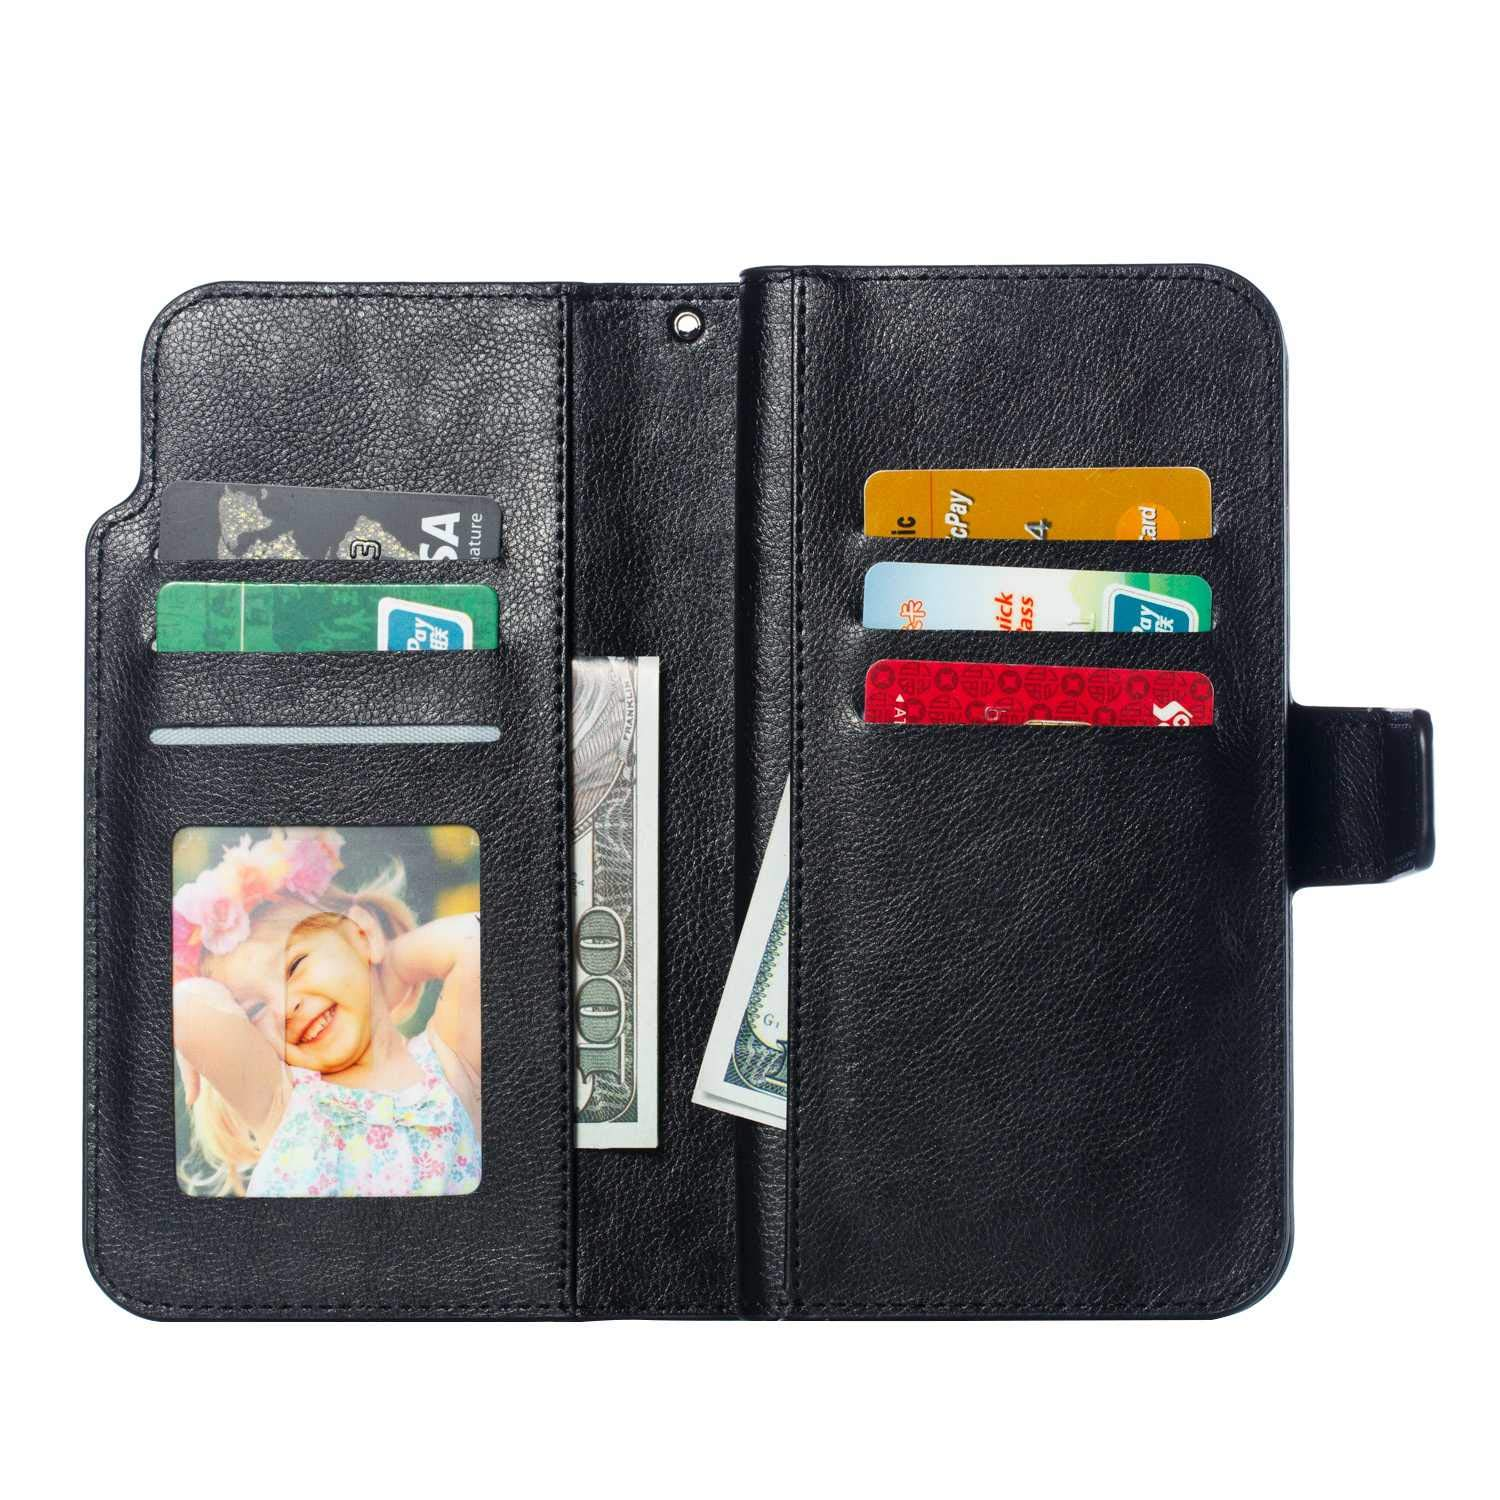 CUSKING iPhone X//iPhone Xs Case Leather Flip Bookstyle Case Magnetic Wallet Cover with Card Holder for Apple iPhone X//iPhone Xs Black